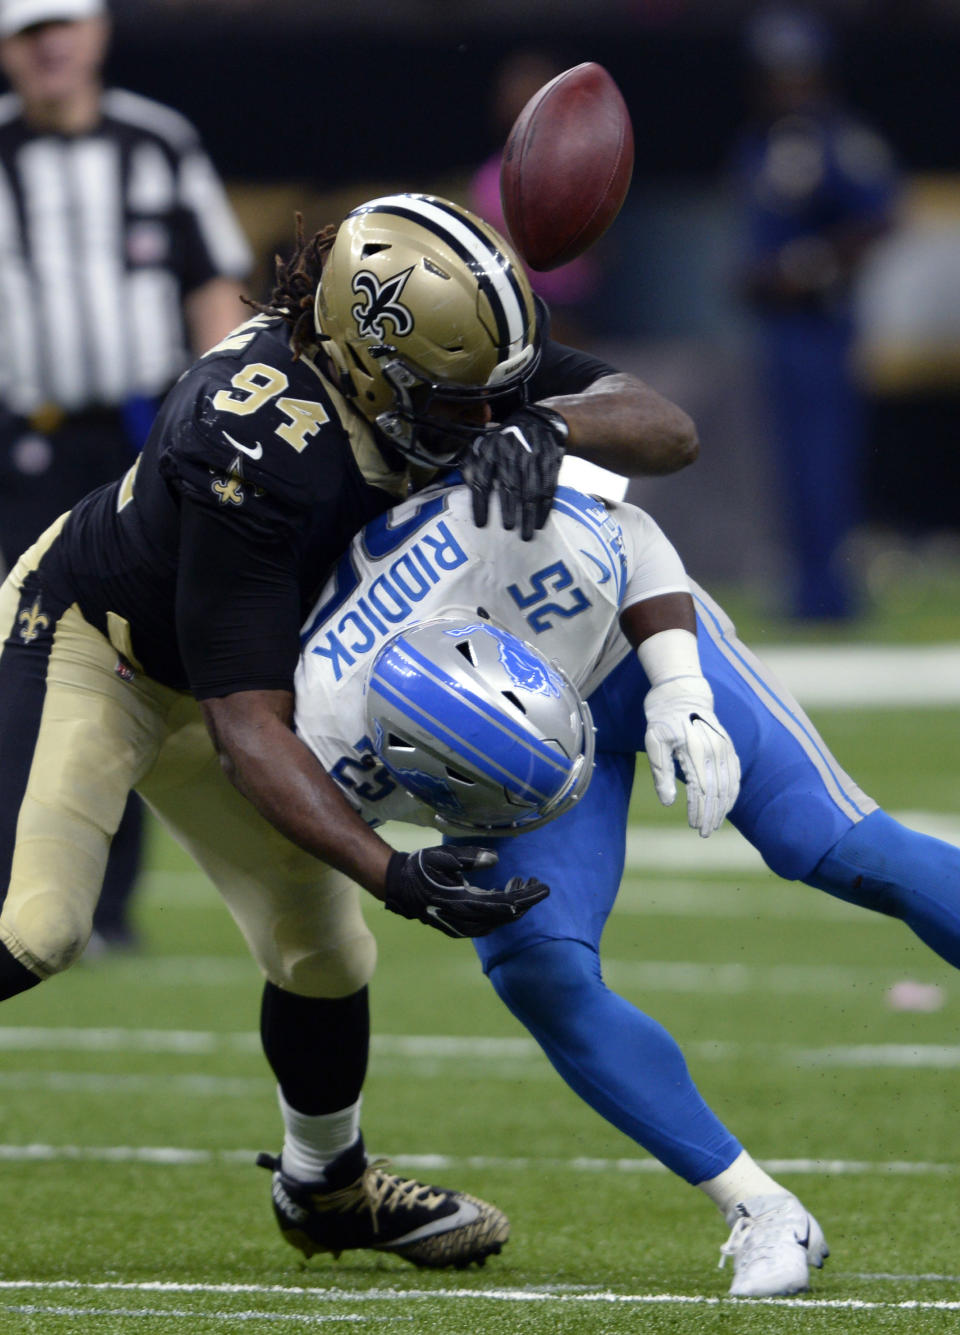 <p>New Orleans Saints defensive end Cameron Jordan (94) forces Detroit Lions running back Theo Riddick (25) to to lose the football on a pass play, resulting in an interception in the second half of an NFL football game in New Orleans, Sunday, Oct. 15, 2017. (AP Photo/Bill Feig) </p>